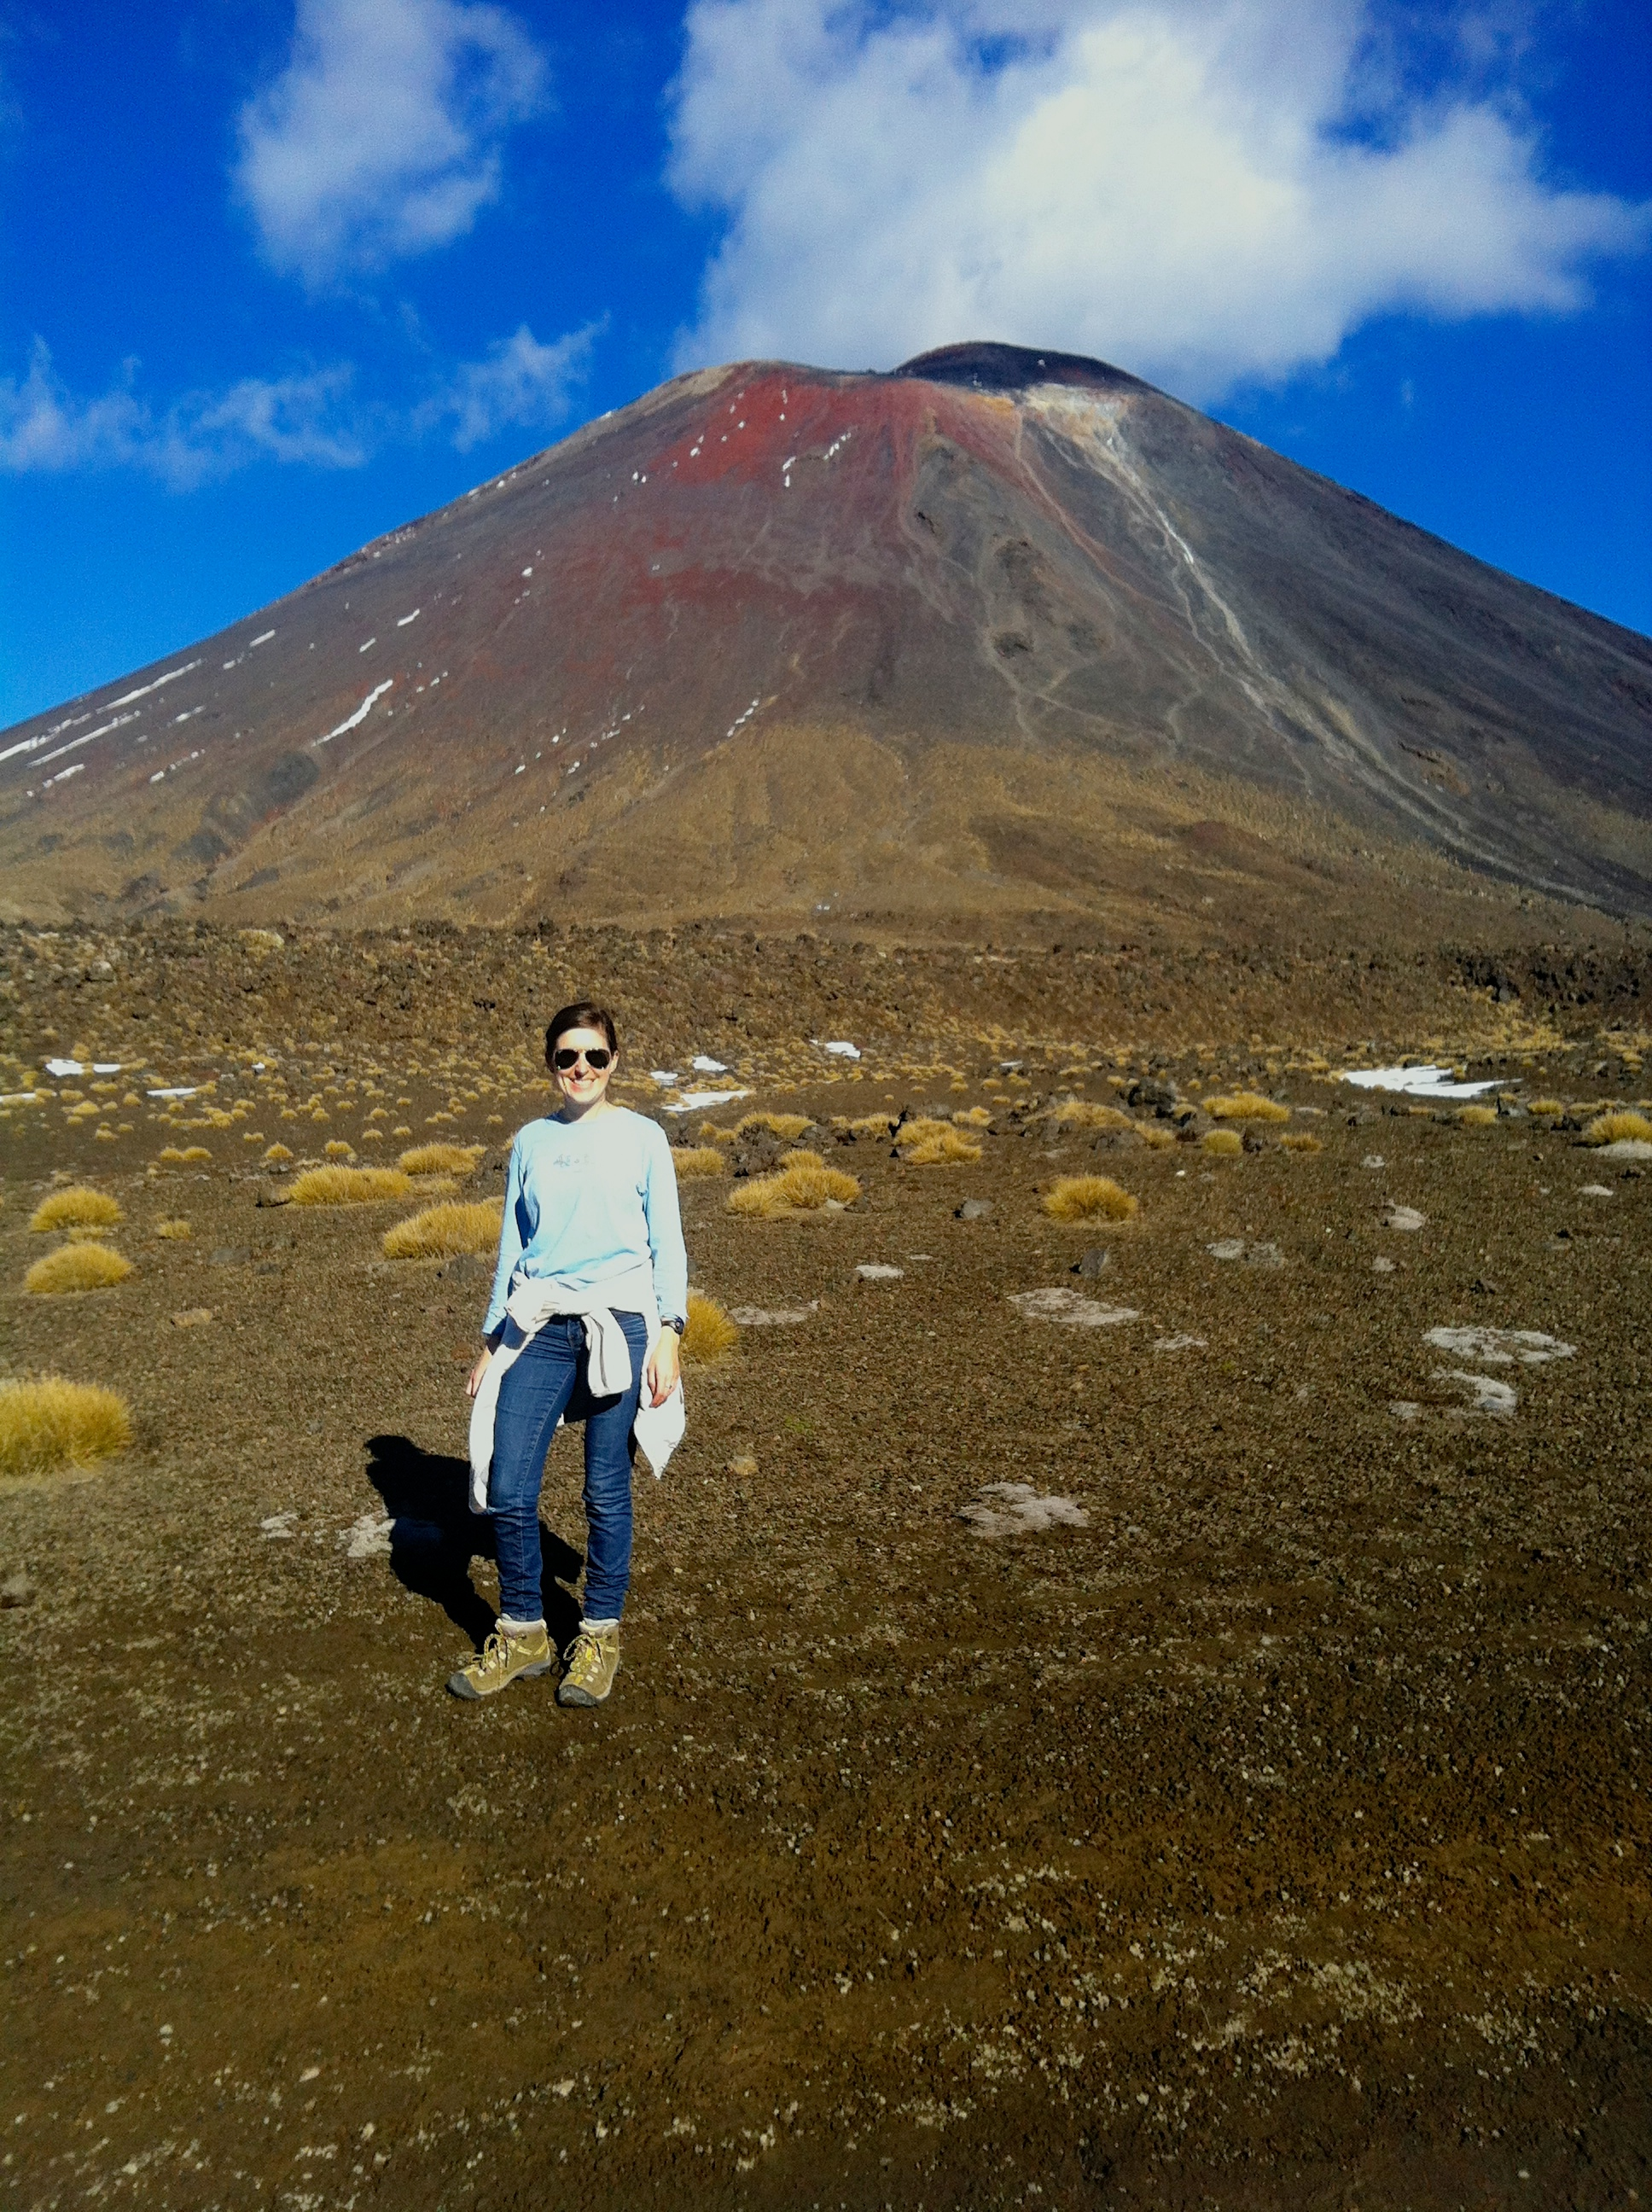 Standing in the south crater during our 8 hour hike across active volcanoes on the Tongariro Crossing.